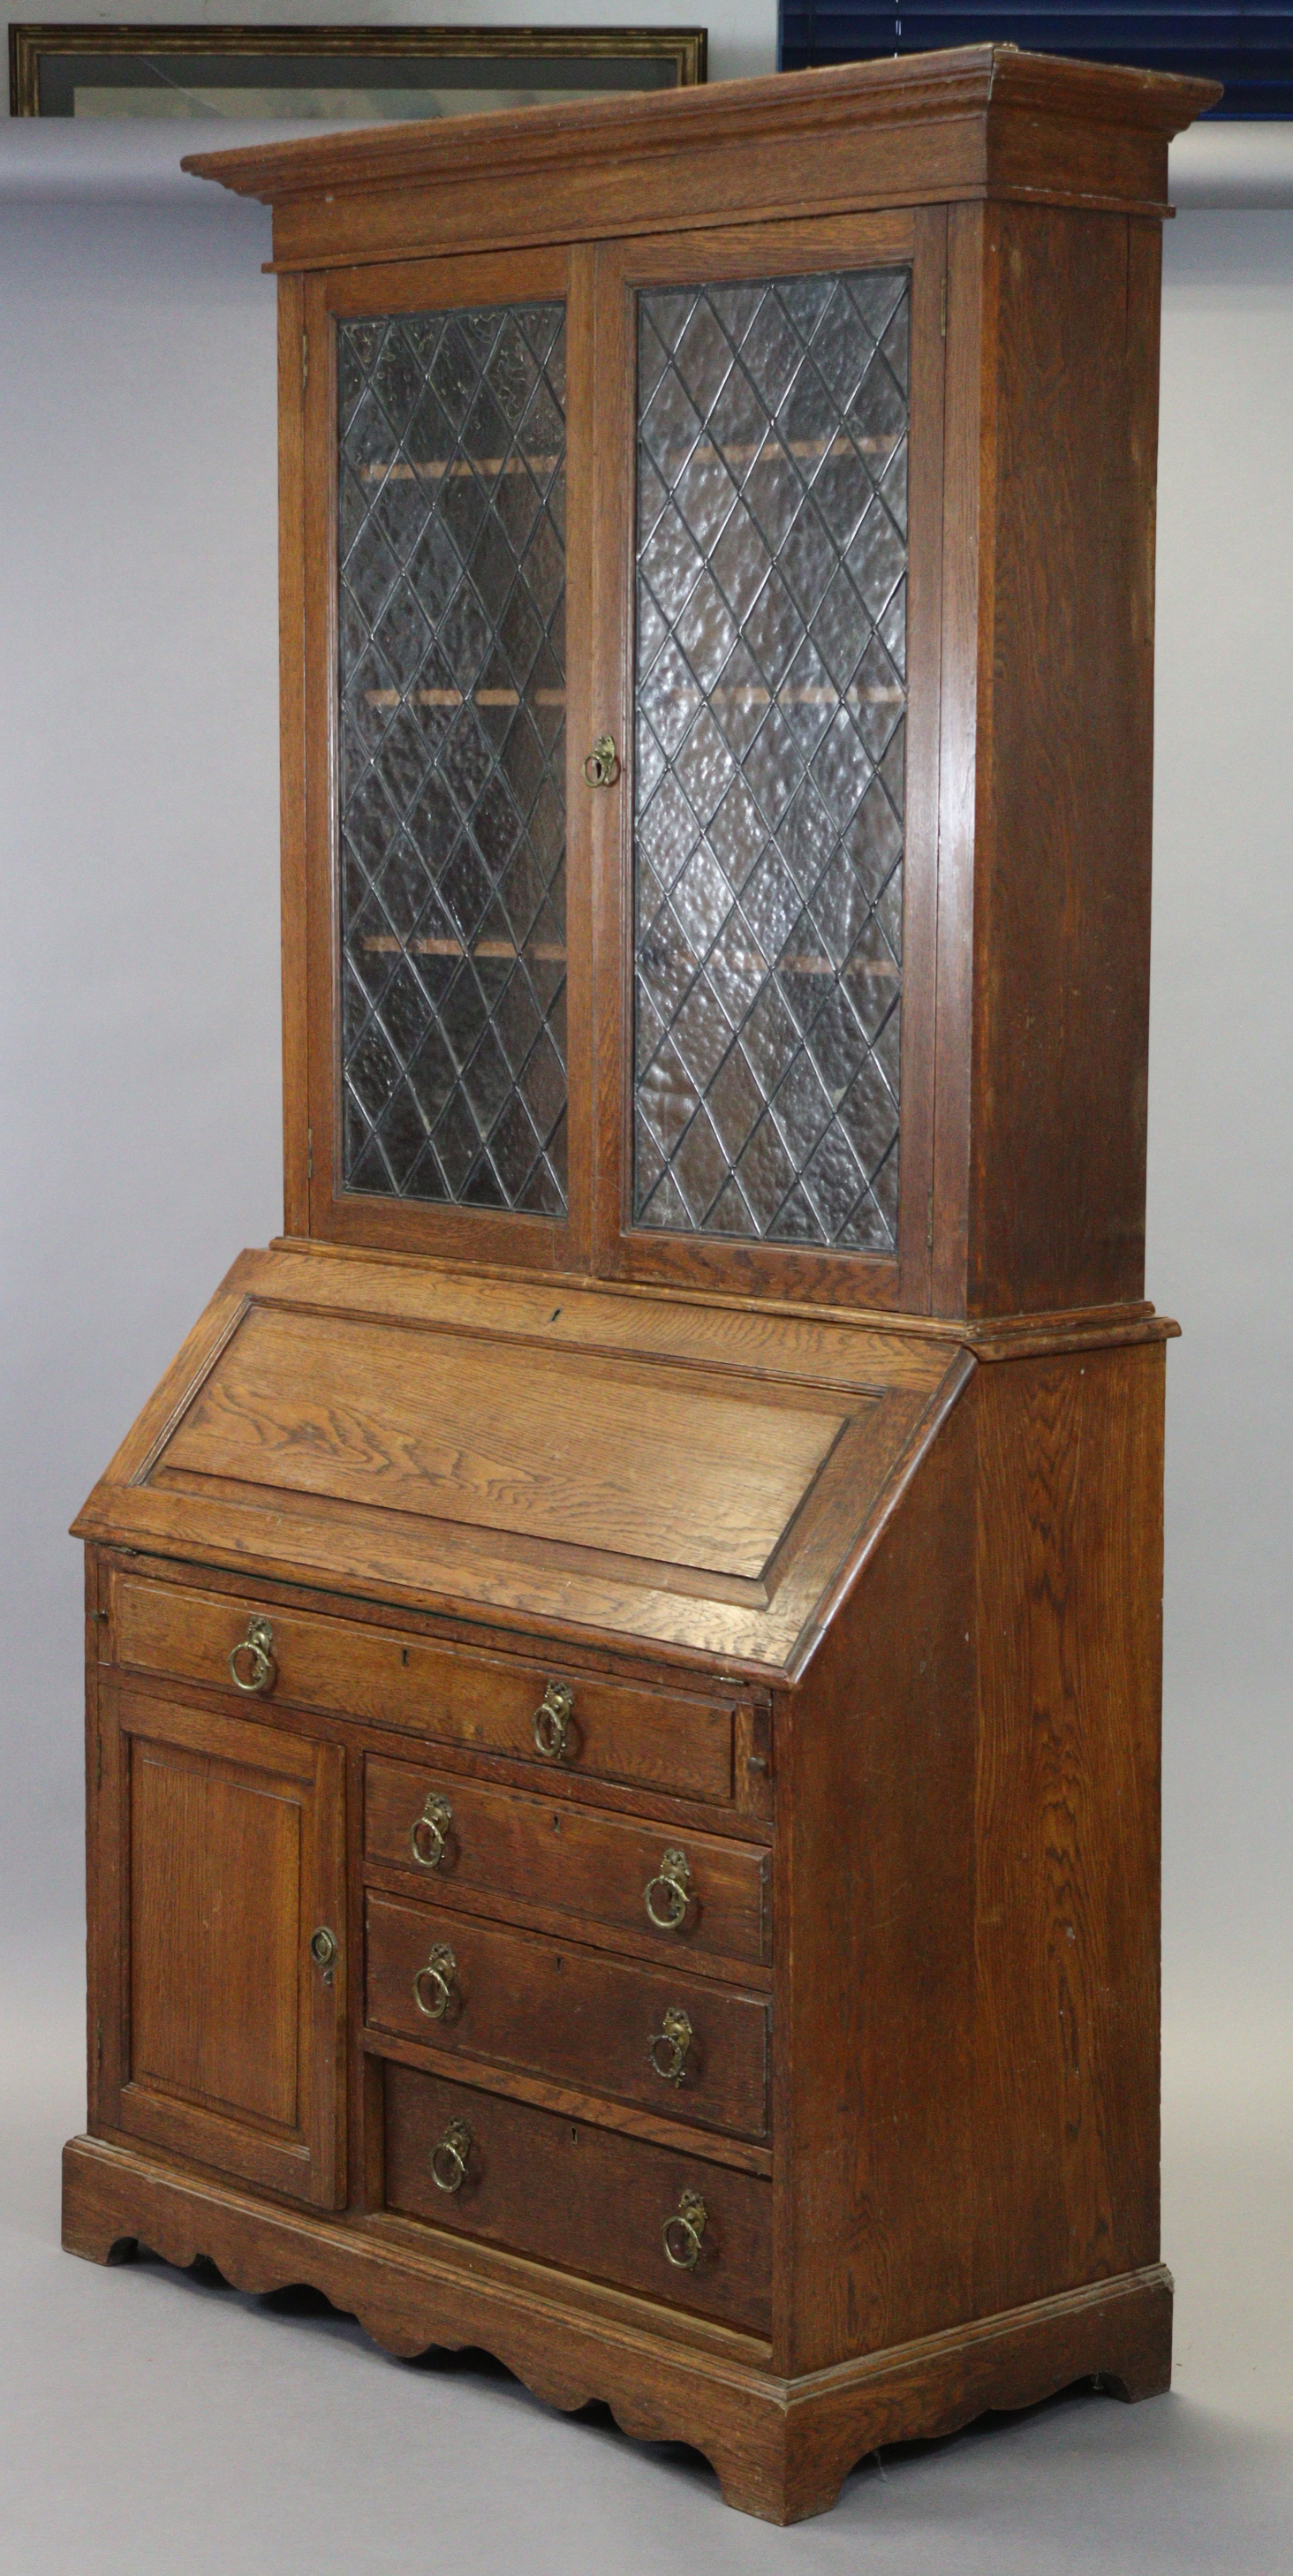 A late 19th/early 20th century oak bureau-bookcase with moulded cornice above a pair of leaded